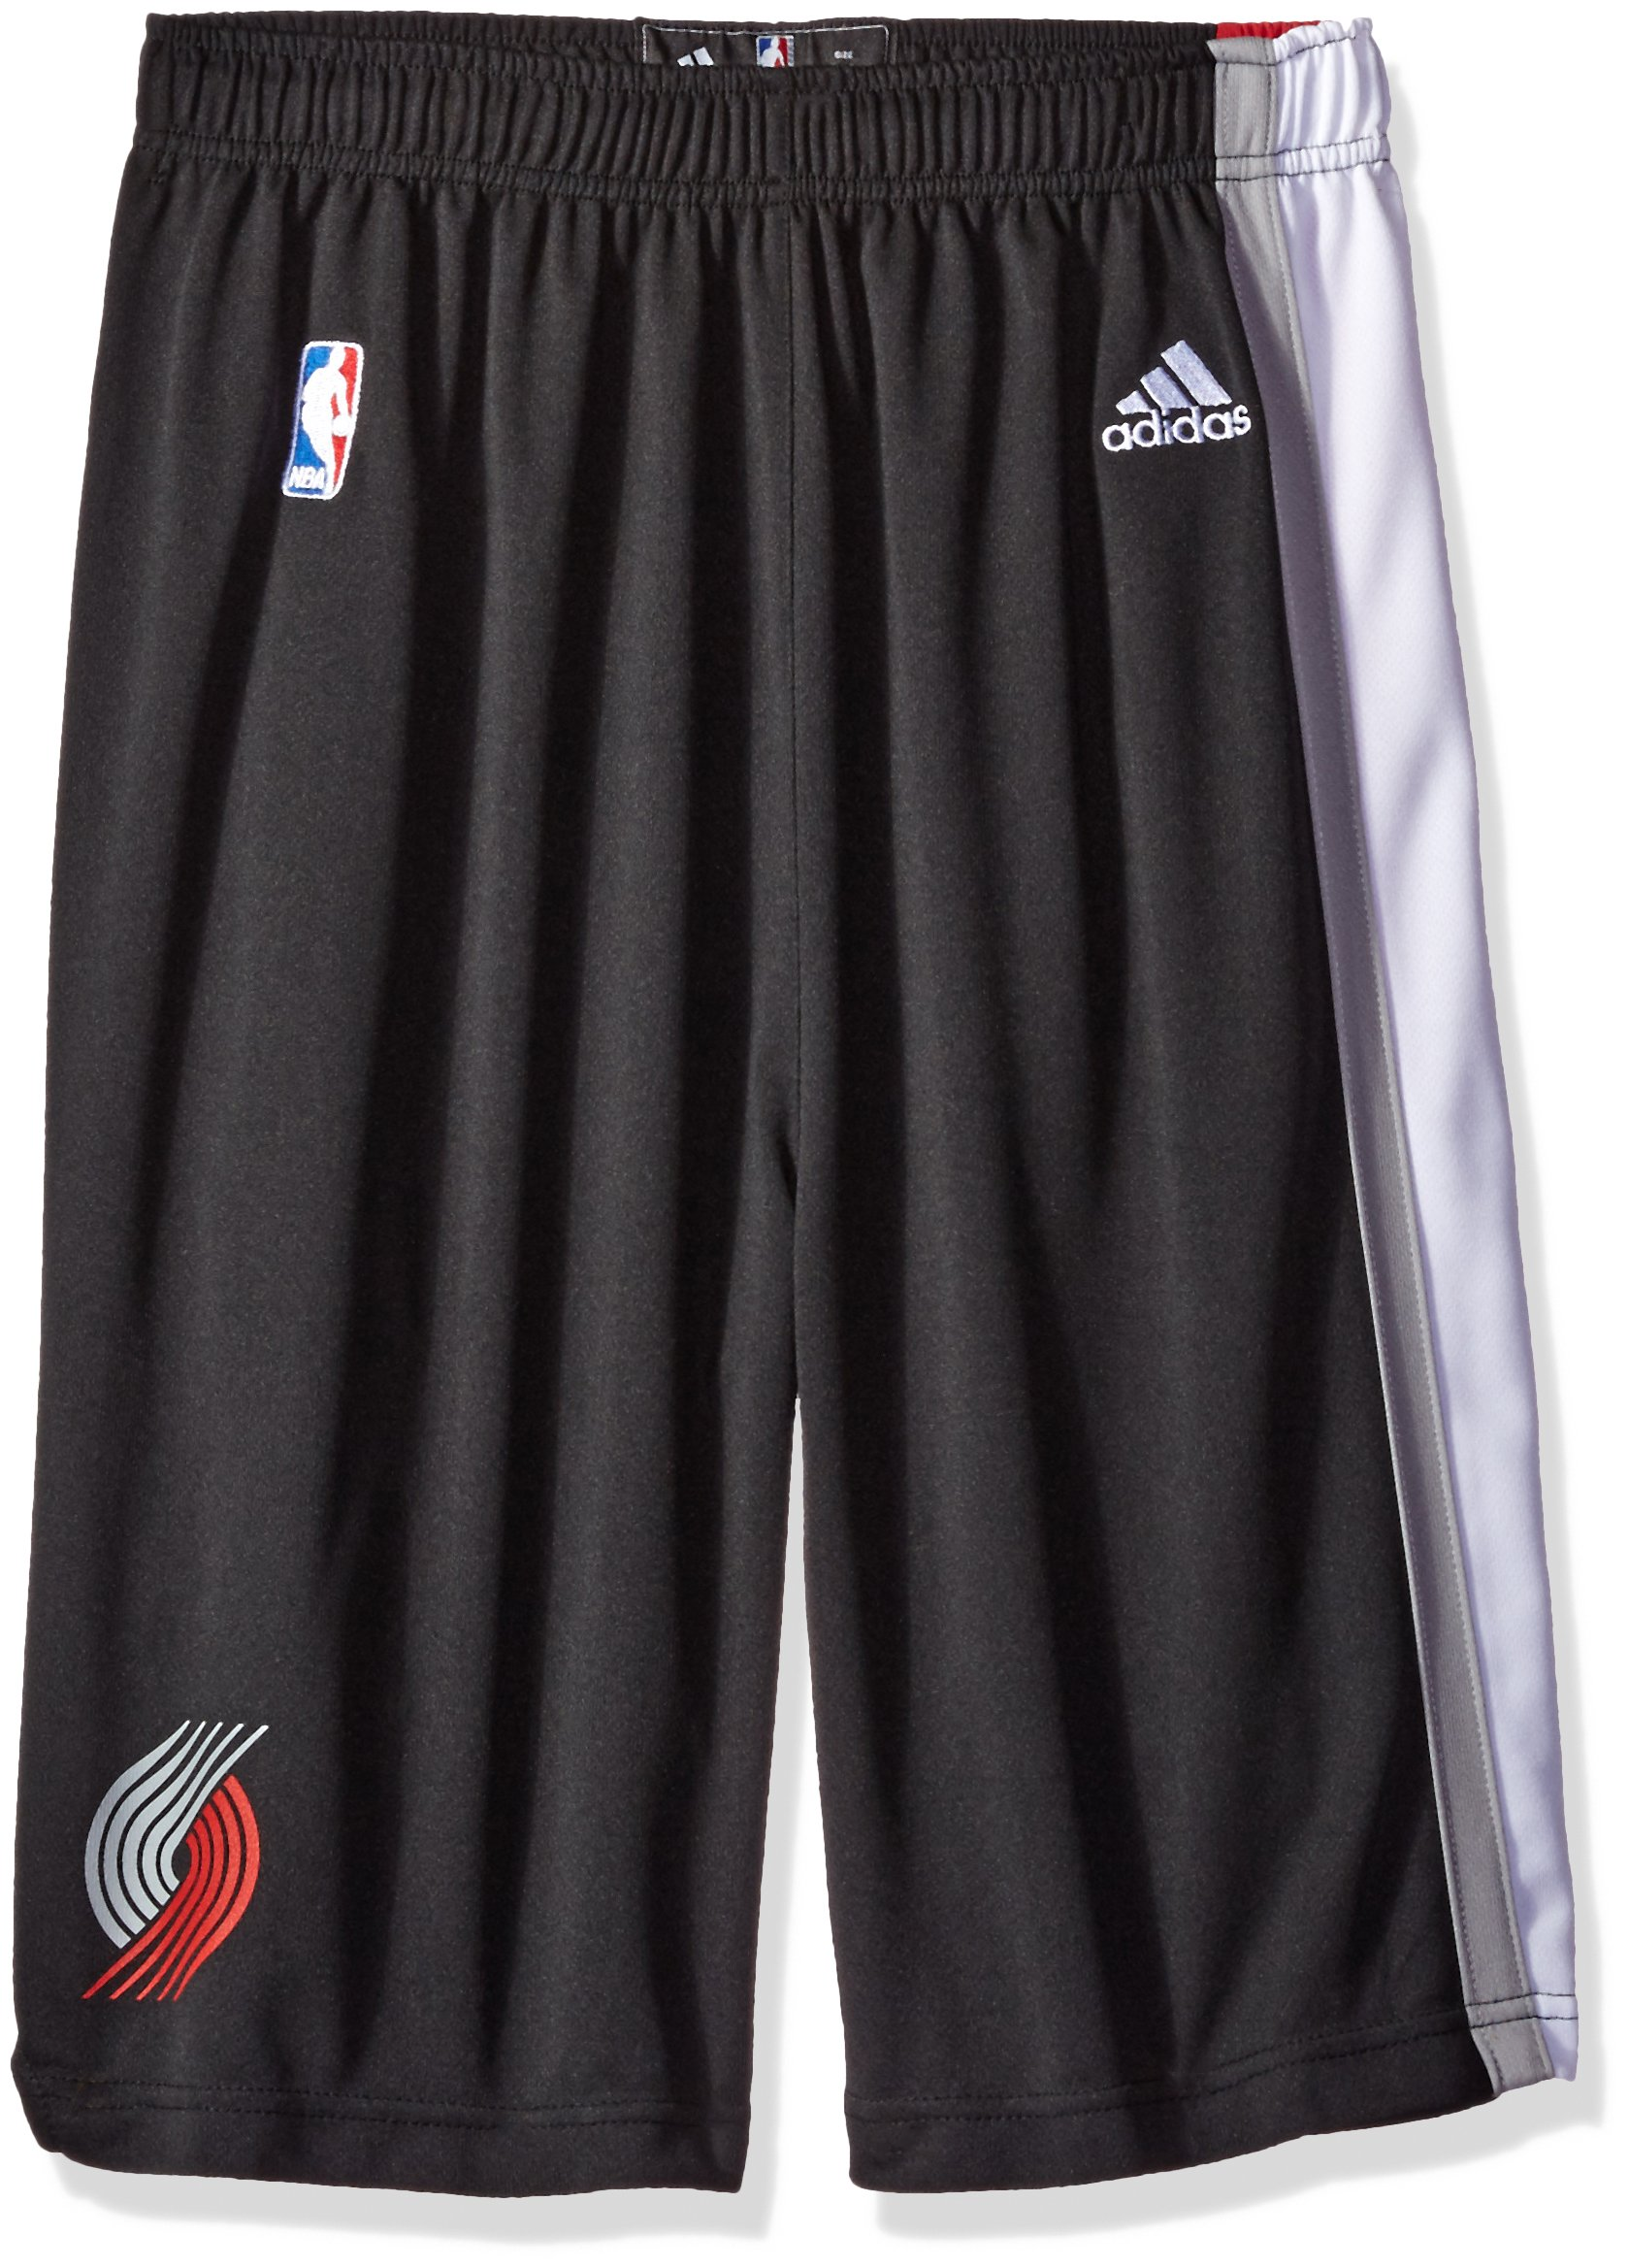 NBA Portland Trail Blazers Youth Boys 8-20 Replica Road Shorts, X-Large (18/20), Black